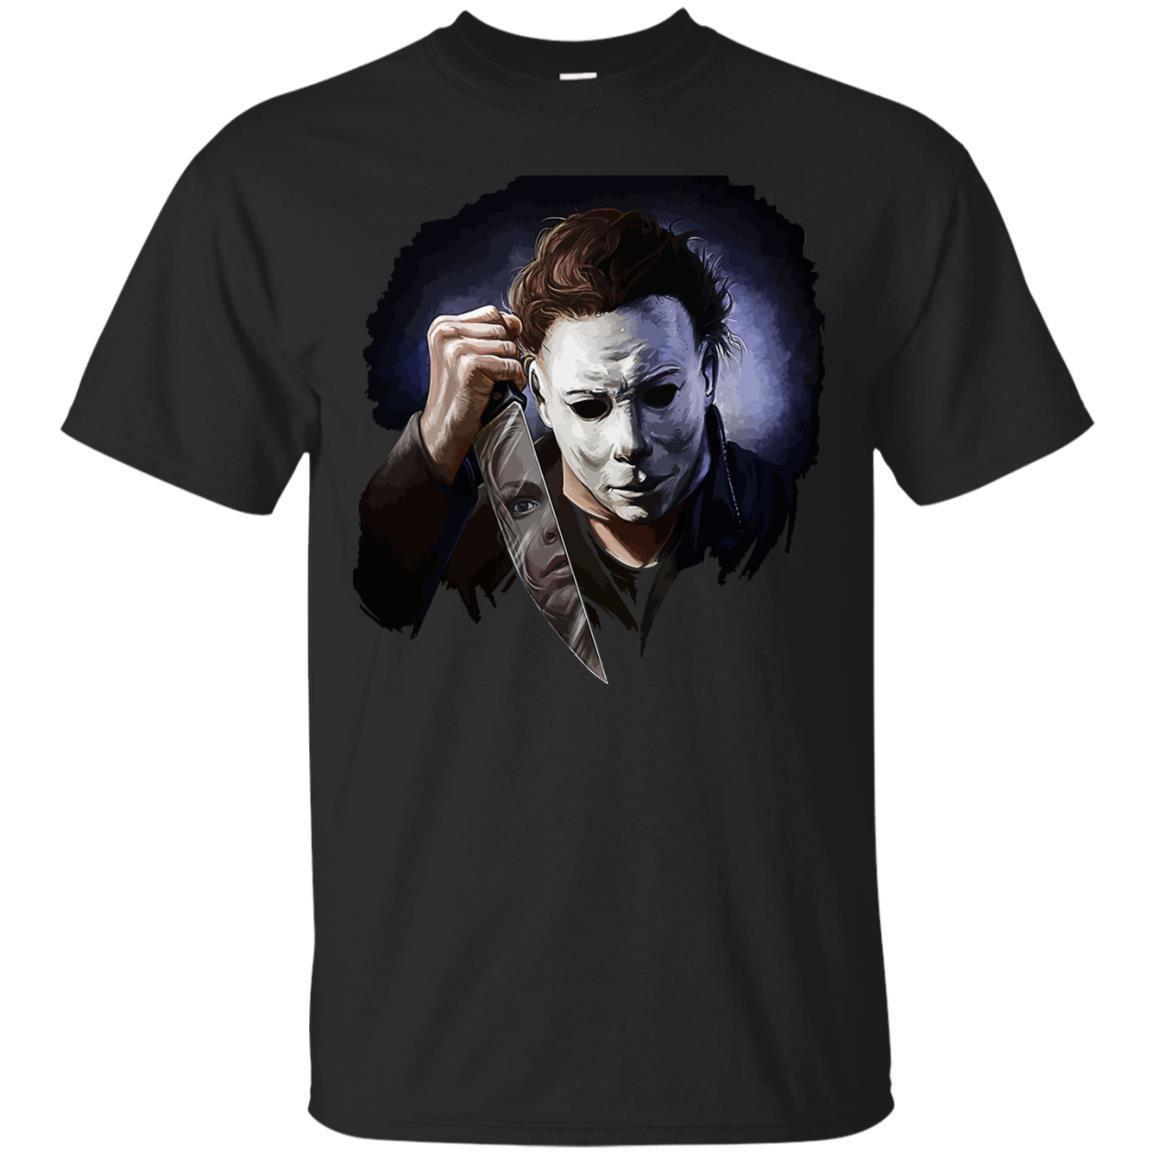 Halloween Michael Myers T-shirt Scare Horror Movie Shirt Short Sleeve Tops S-3XL Brand shirts jeans Print Short Sleeve Plus Size t-shirt